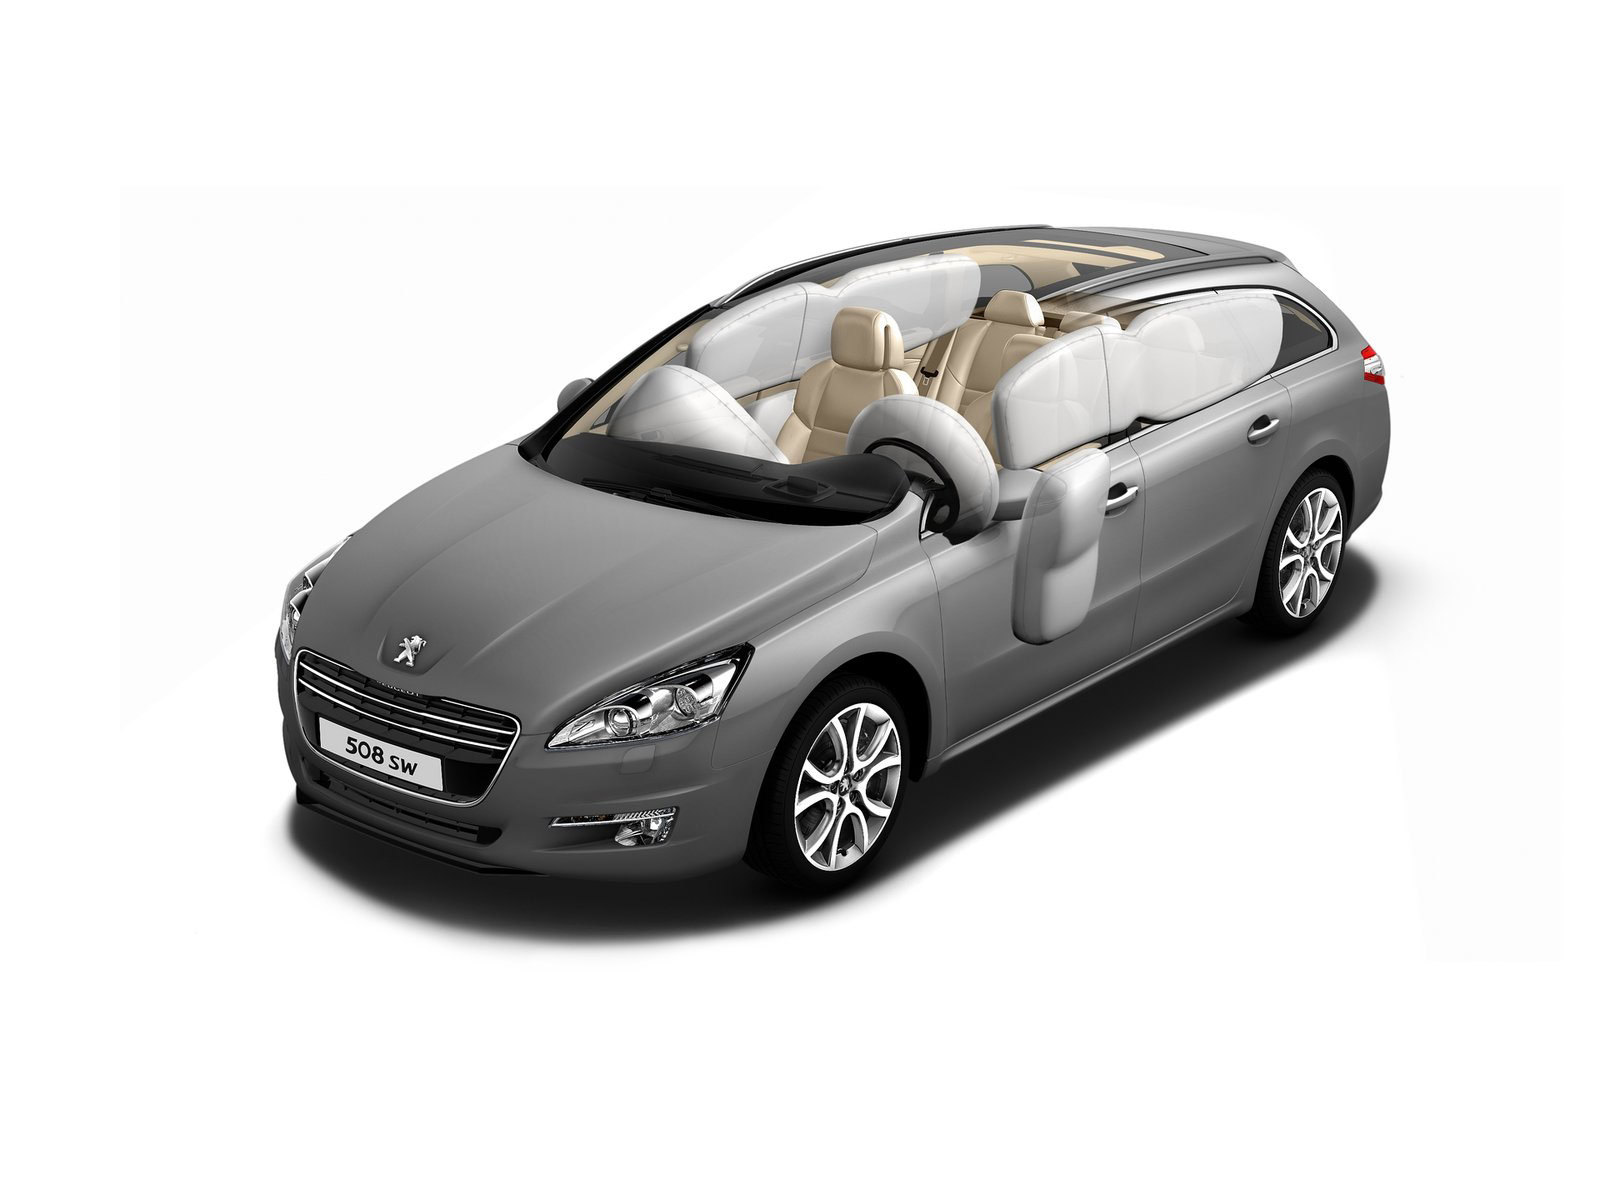 peugeot 508 sw pictures insurance informations 2011. Black Bedroom Furniture Sets. Home Design Ideas